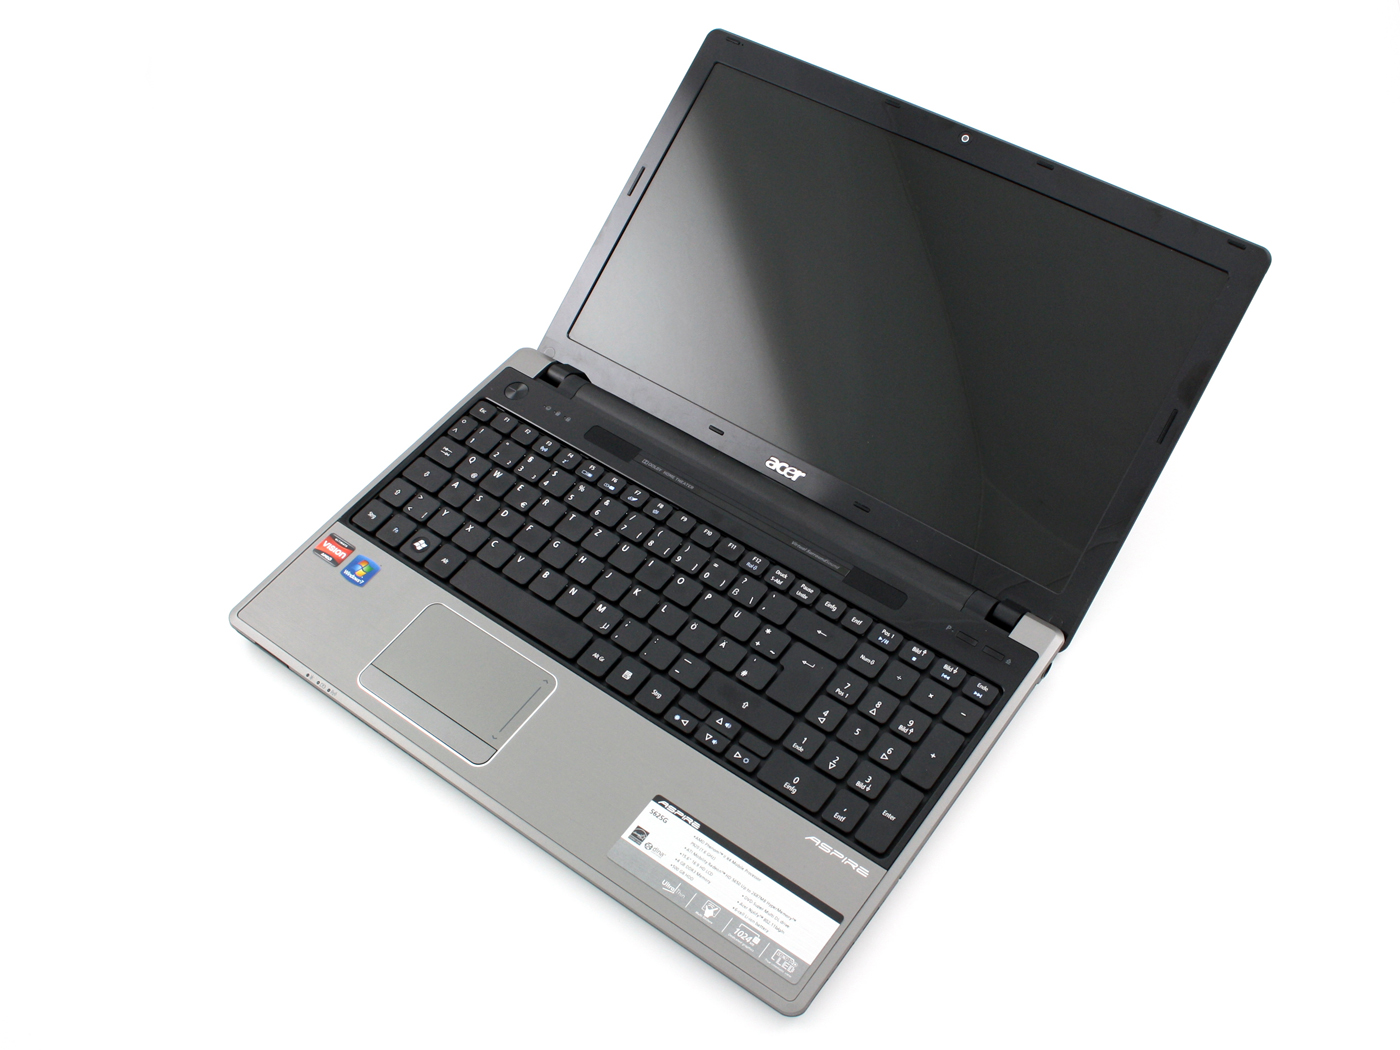 Acer Aspire 5820G Broadcom Bluetooth Driver Windows